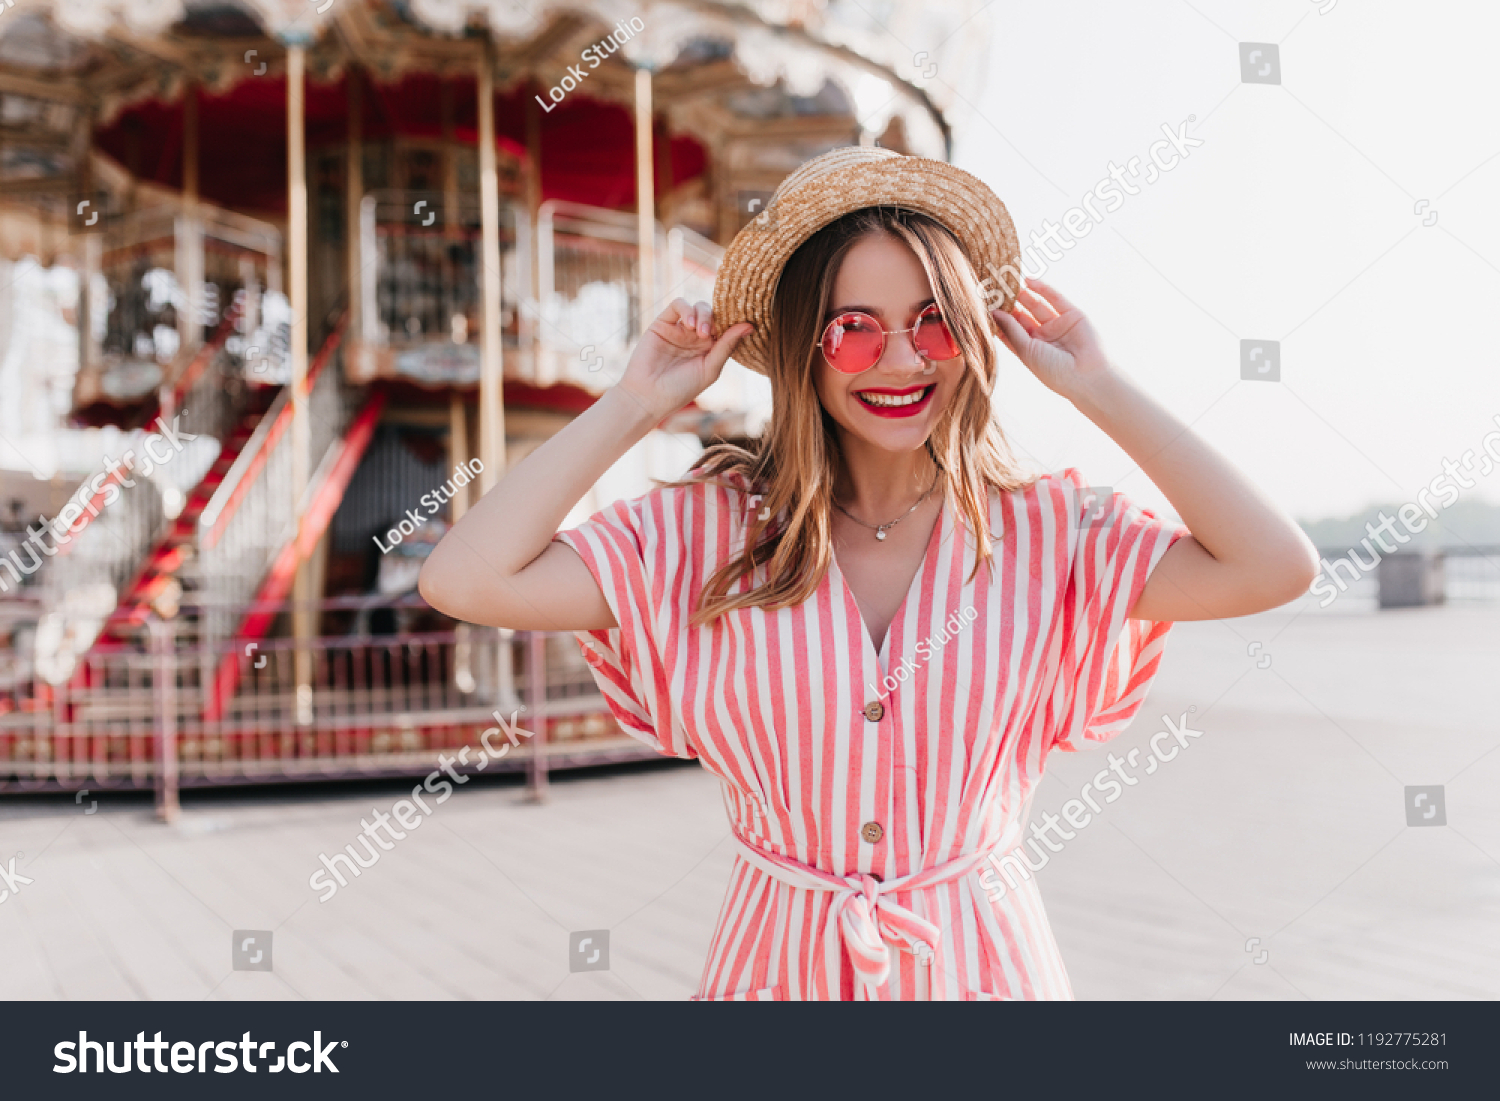 f51d3110120 Spectacular female model with sincere smile posing near carousel in  amusement park. Joyful white young